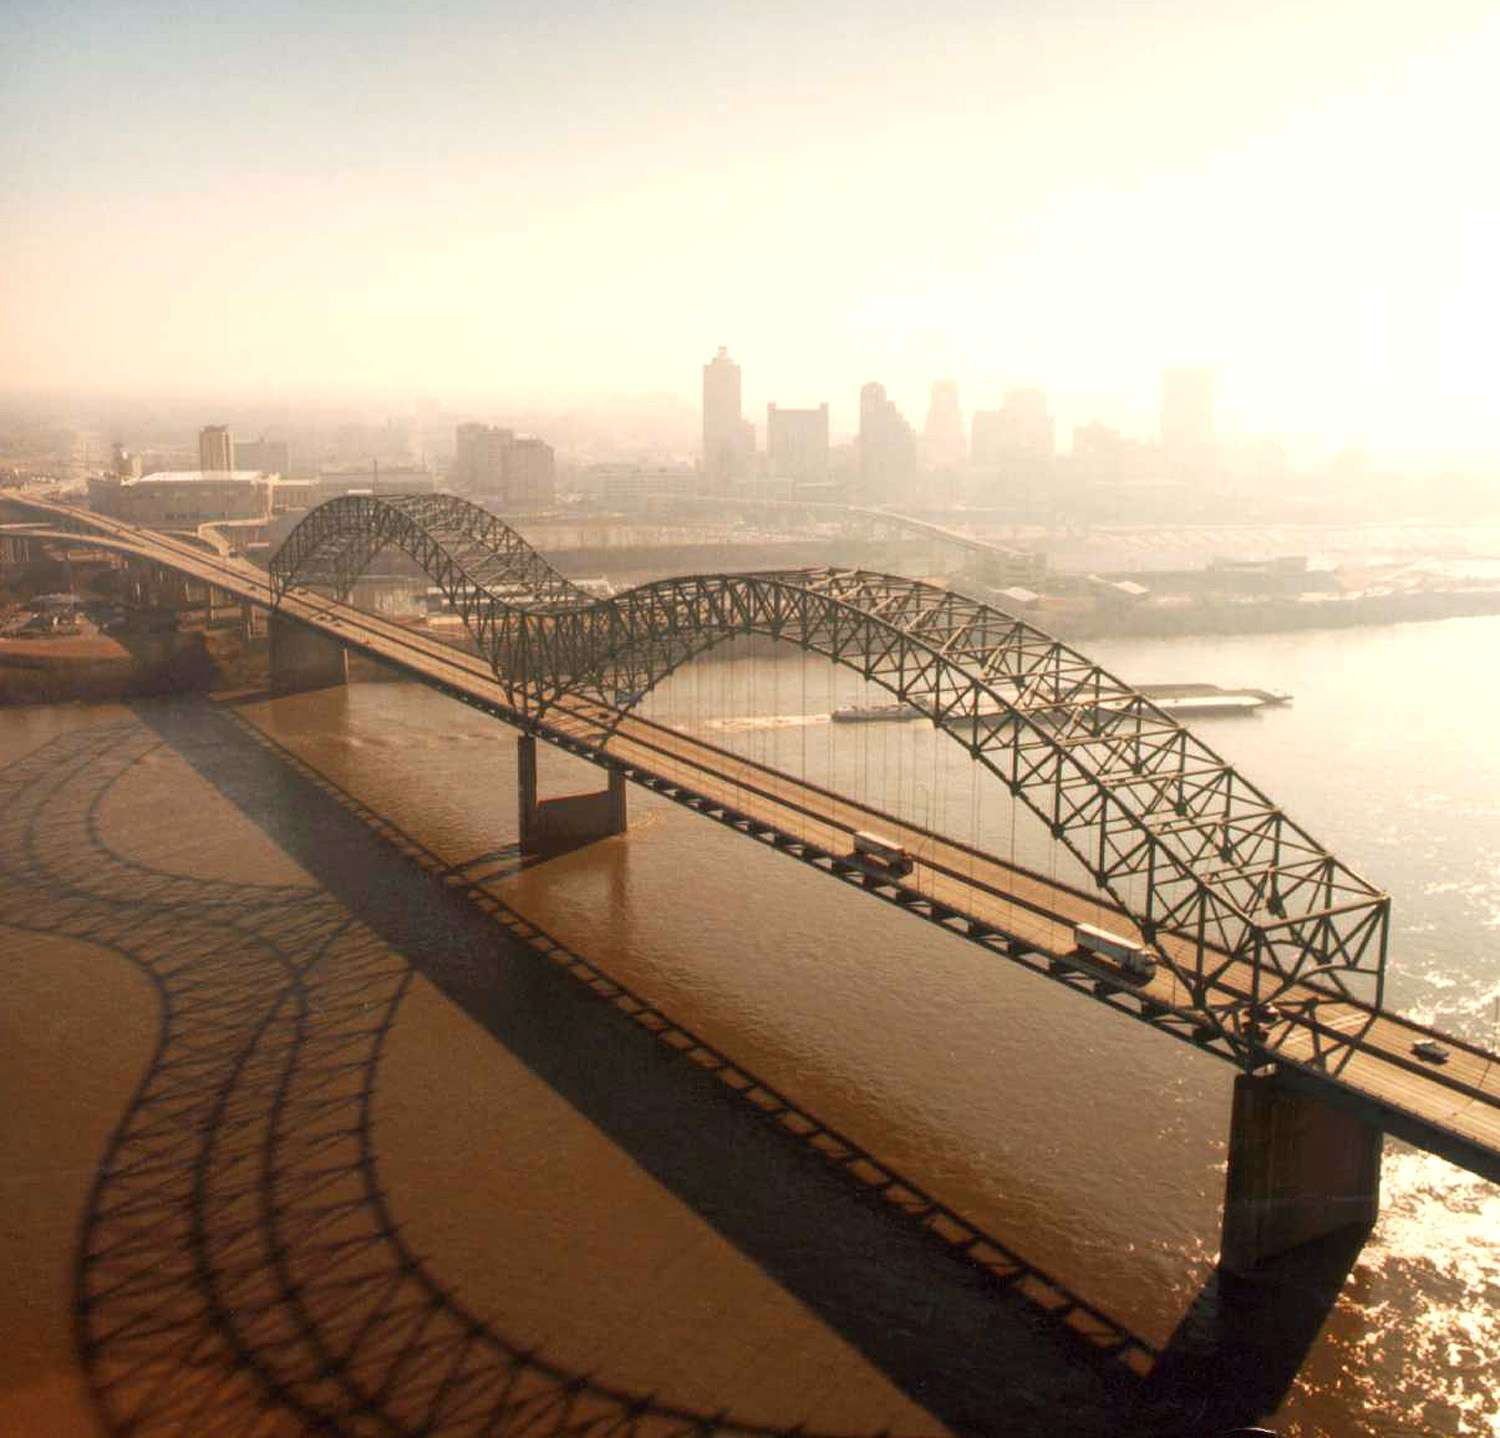 Aerial view of the Hernando de Soto Bridge across the Mississippi River between Memphis, Tennessee and West Memphis, Arkansas, USA.